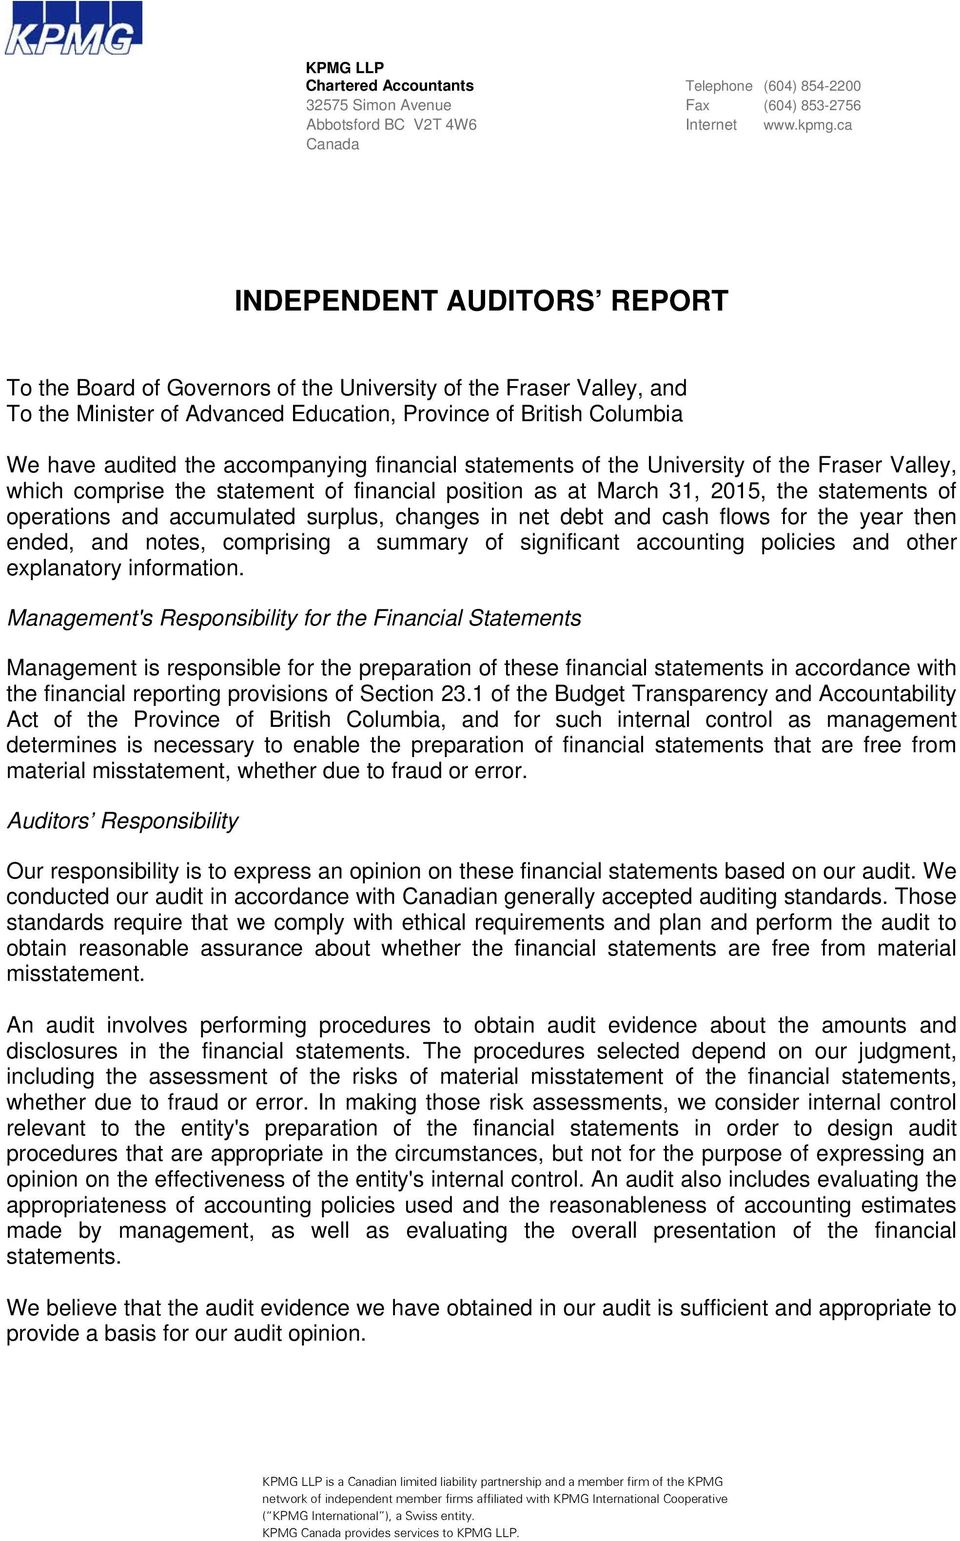 accompanying financial statements of the University of the Fraser Valley, which comprise the statement of financial position as at March 31, 2015, the statements of operations and accumulated